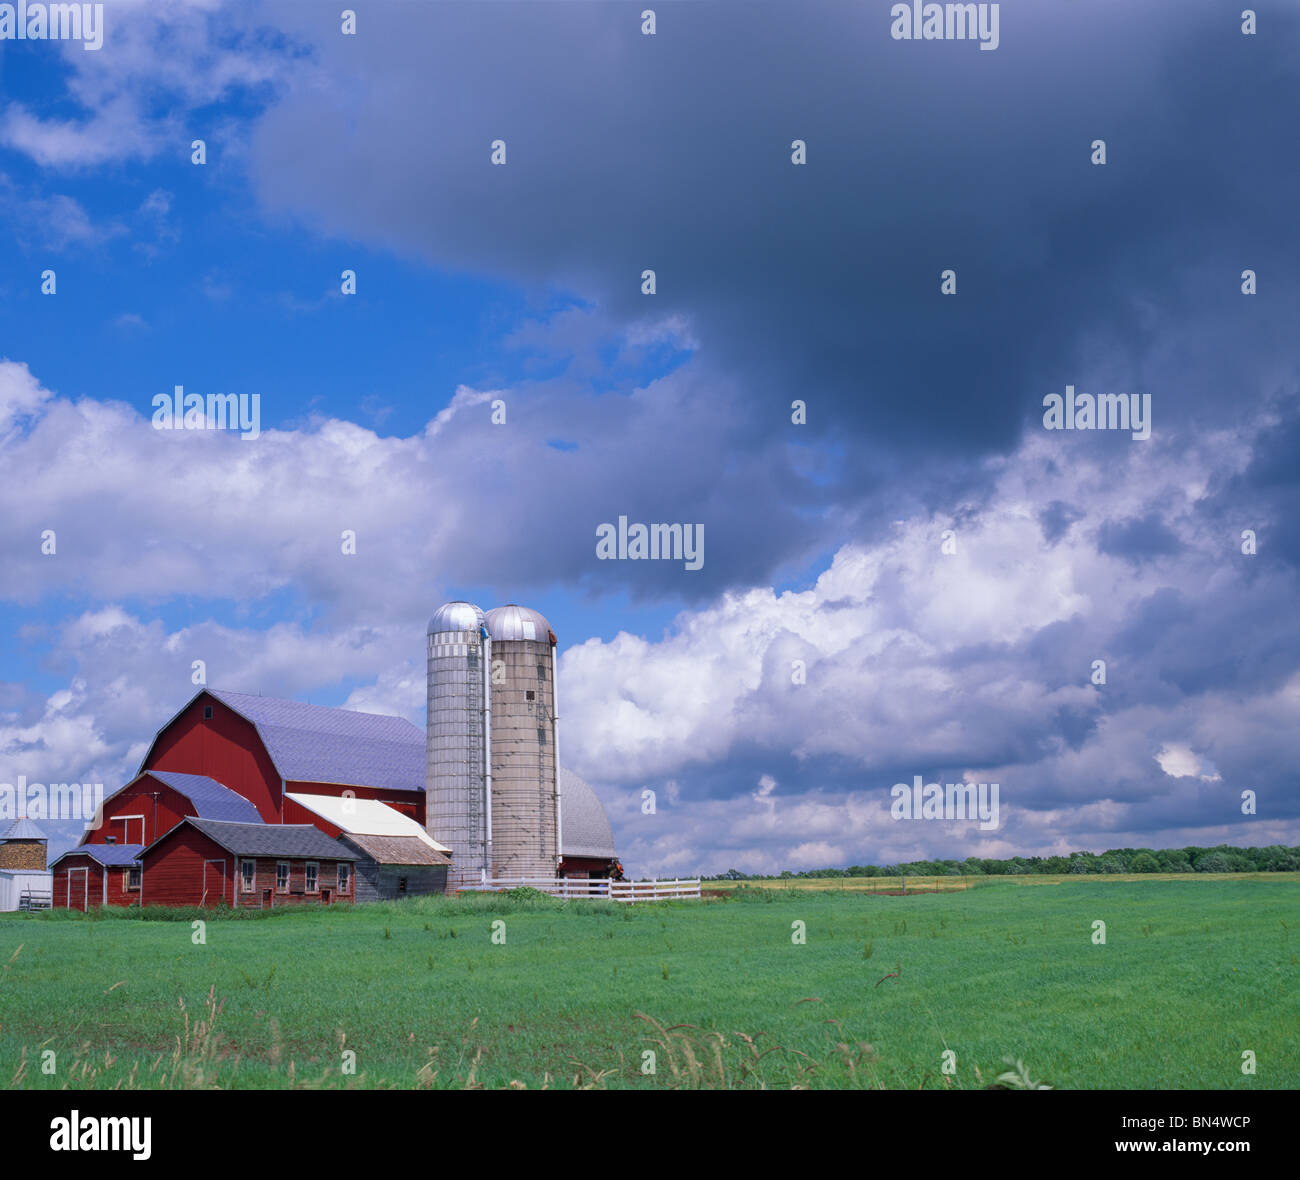 Clark County, WI Summer clouds over farm with silos, red barn and green fields - Stock Image